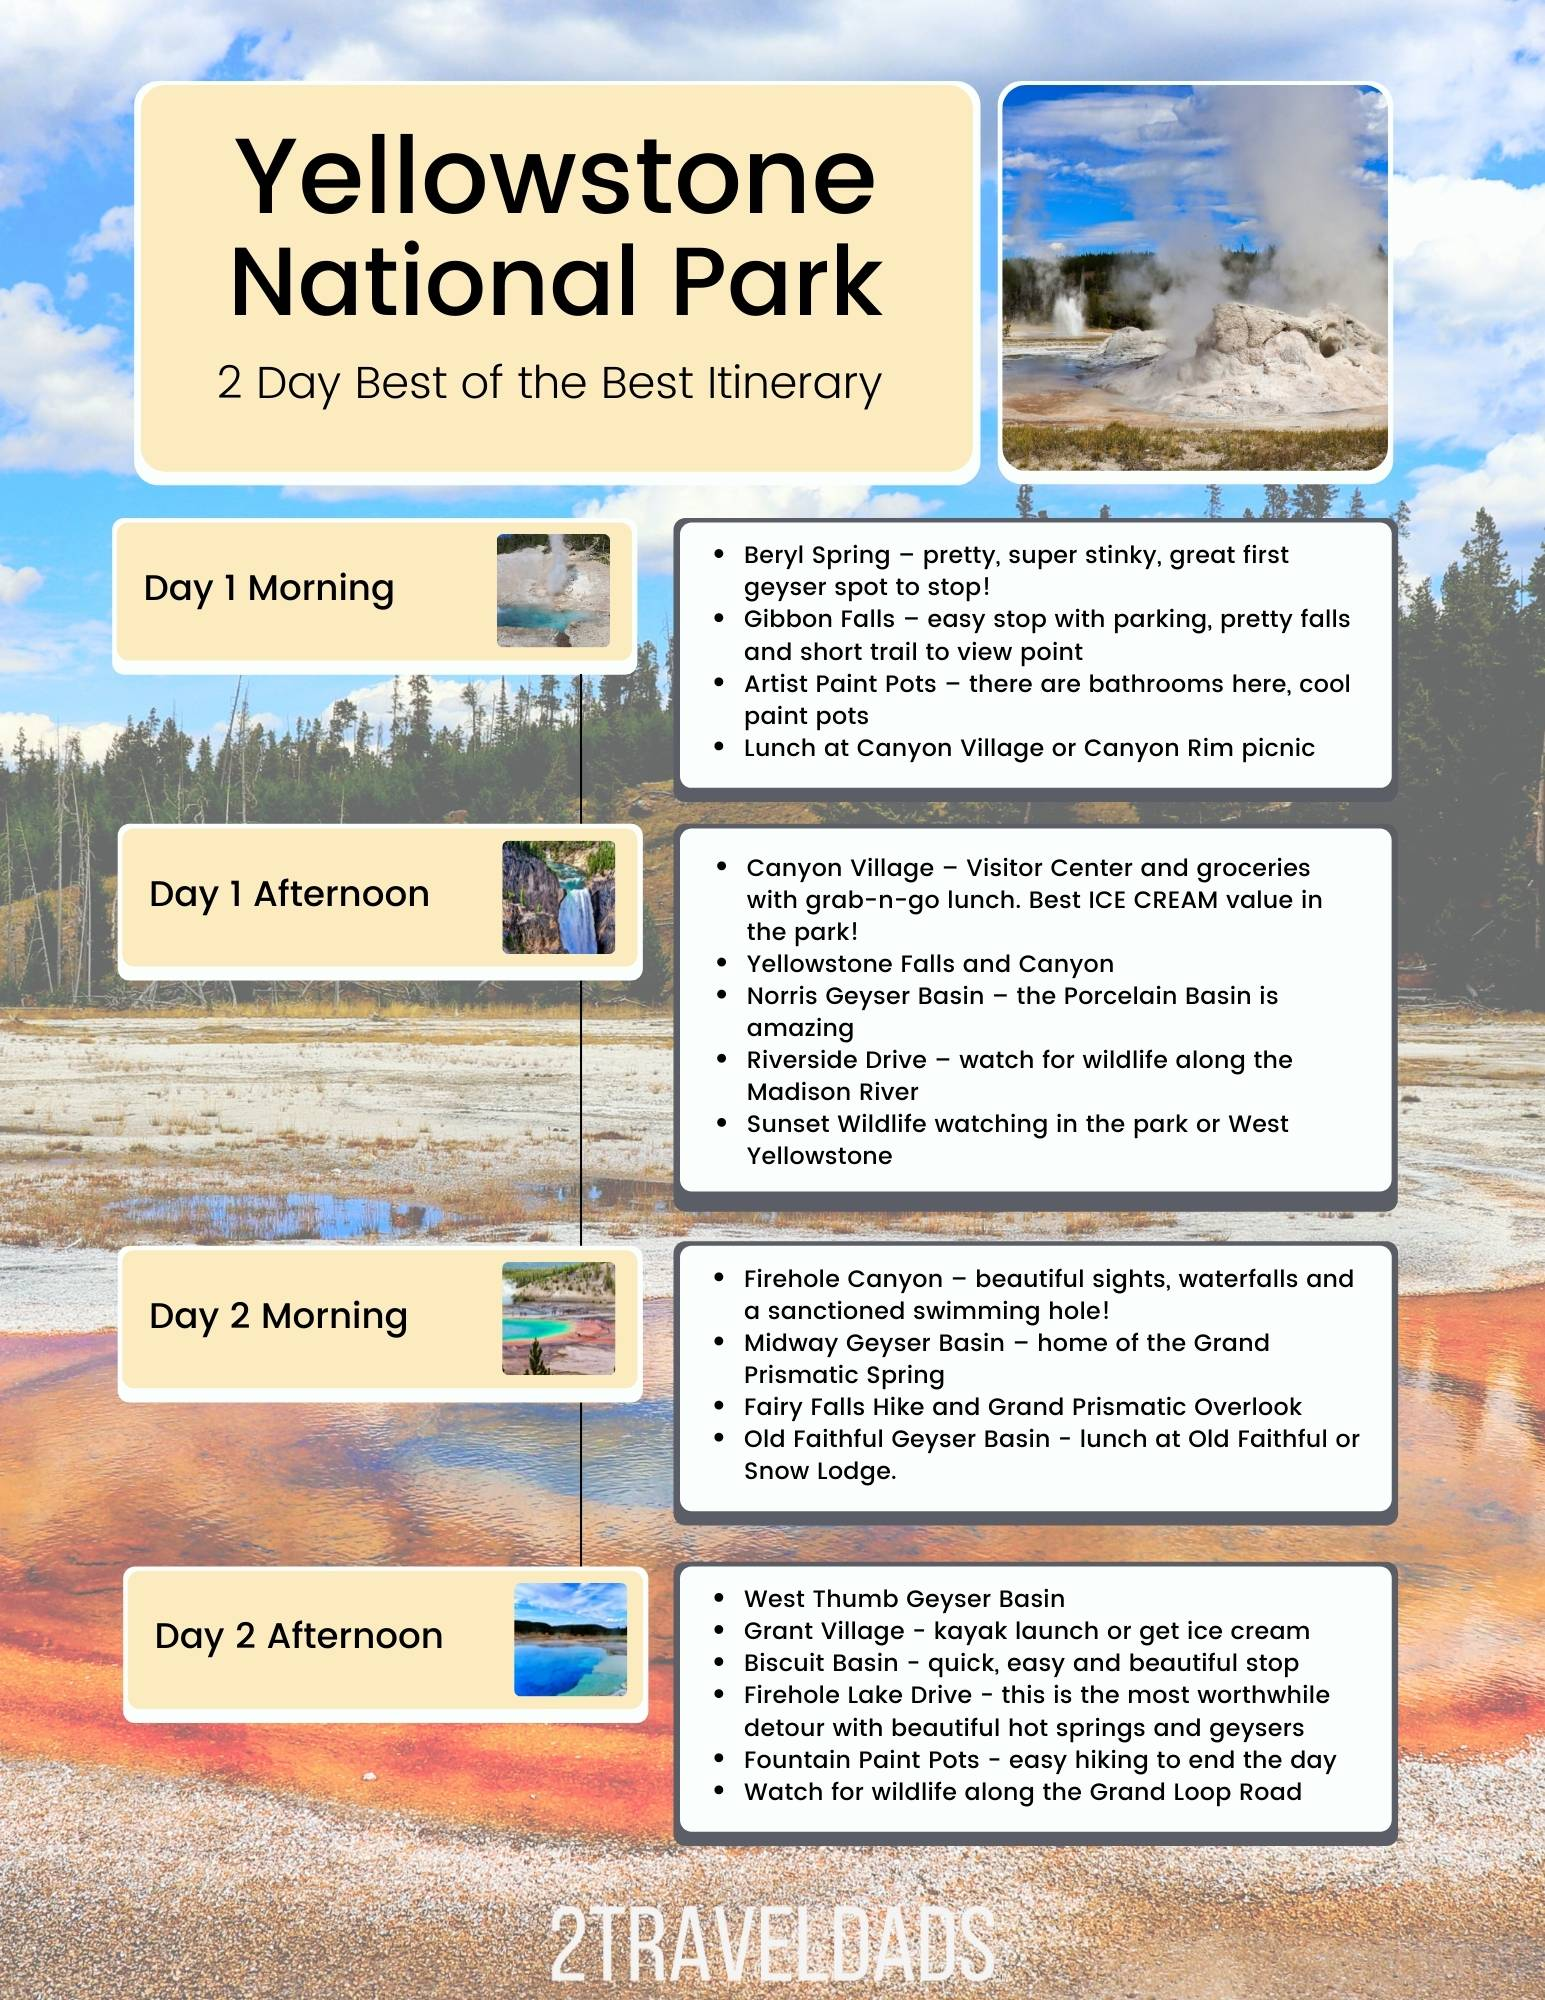 2 Day Yellowstone National Park Itinerary, the best of the best geysers and epic sights you can't miss.